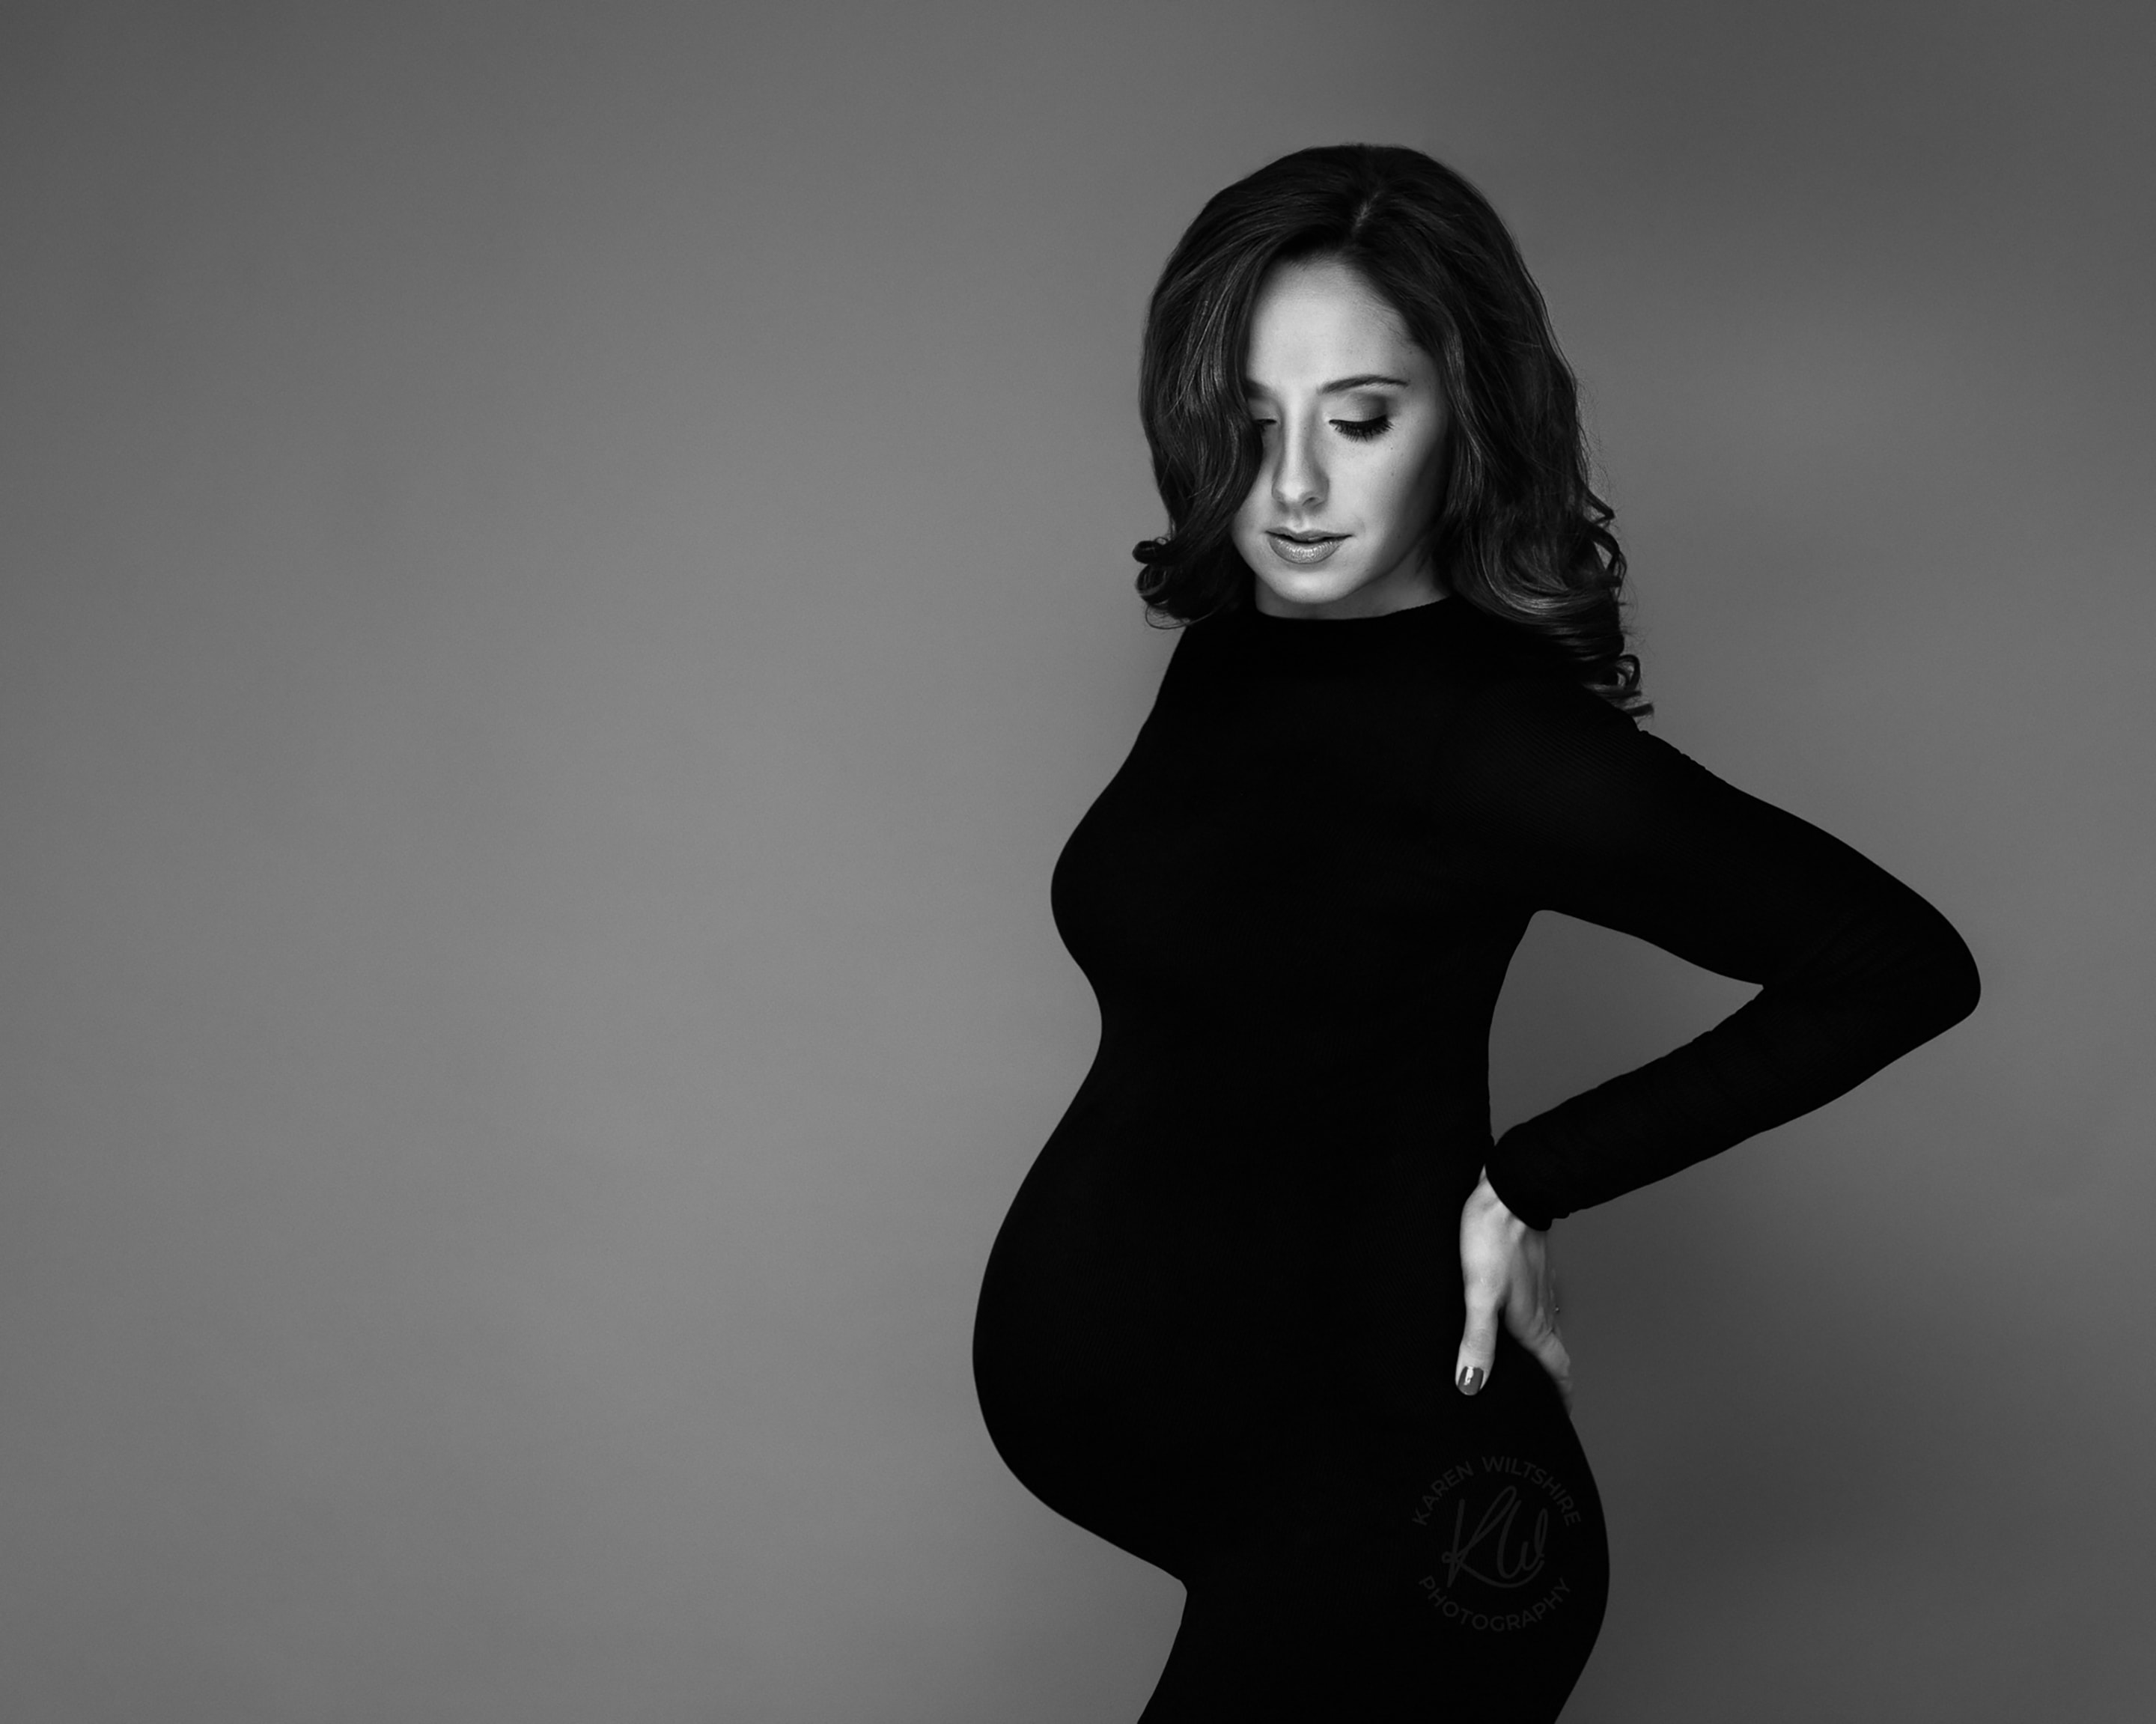 pregnant lady posing for bump photos